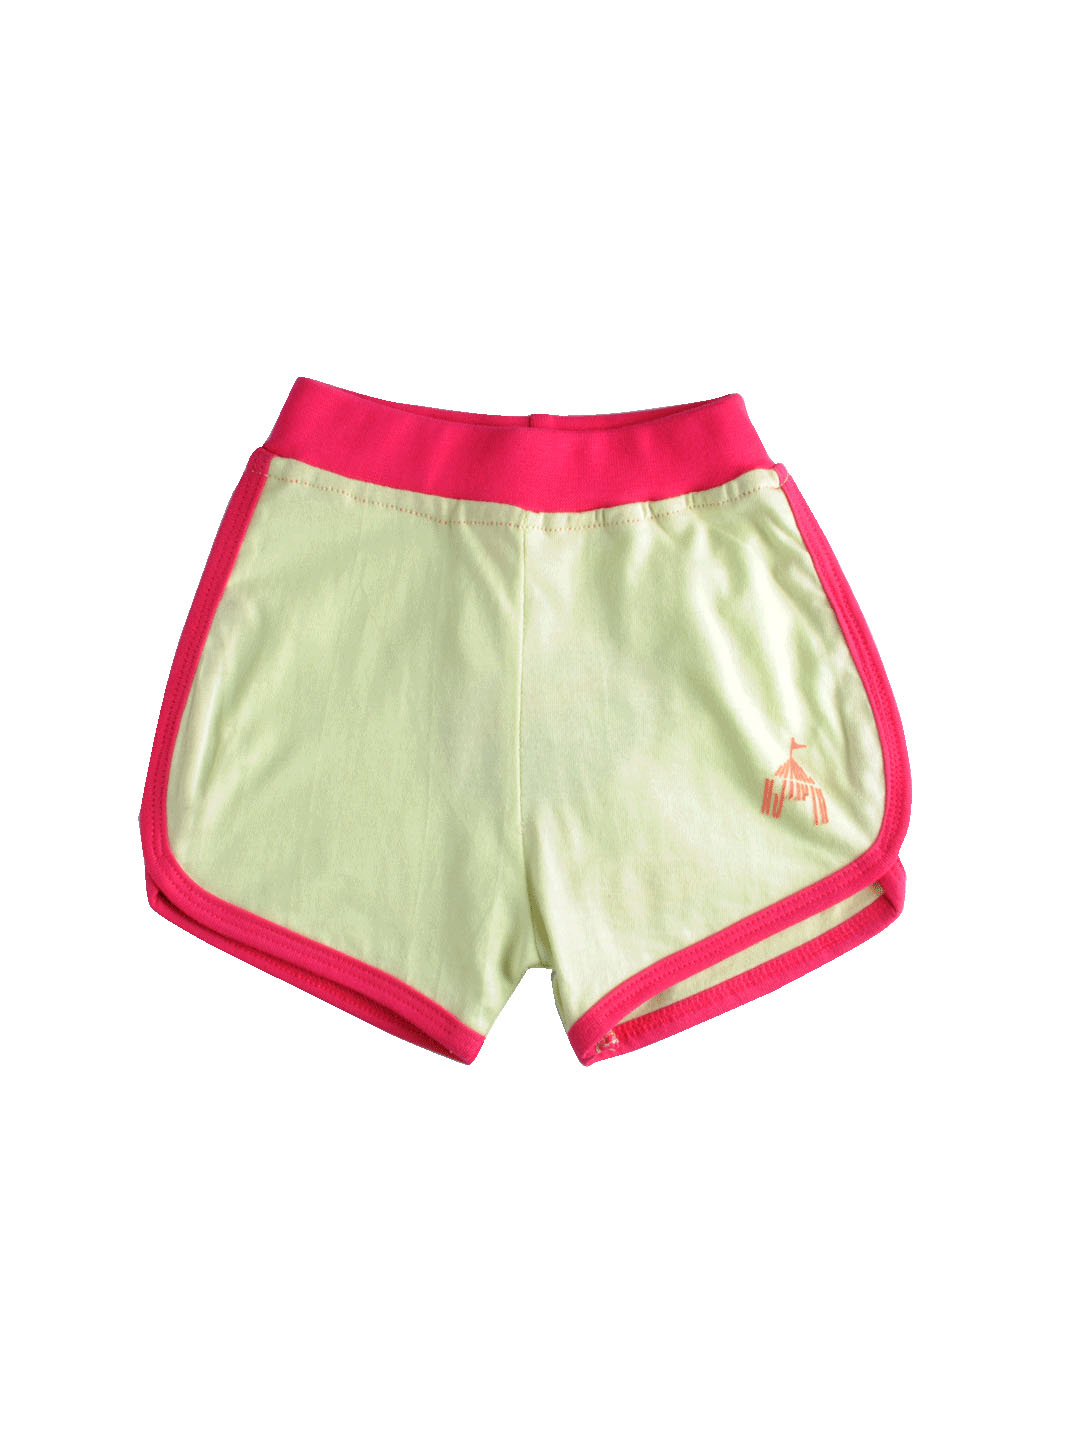 Madagascar 3 Girls Light Green Shorts